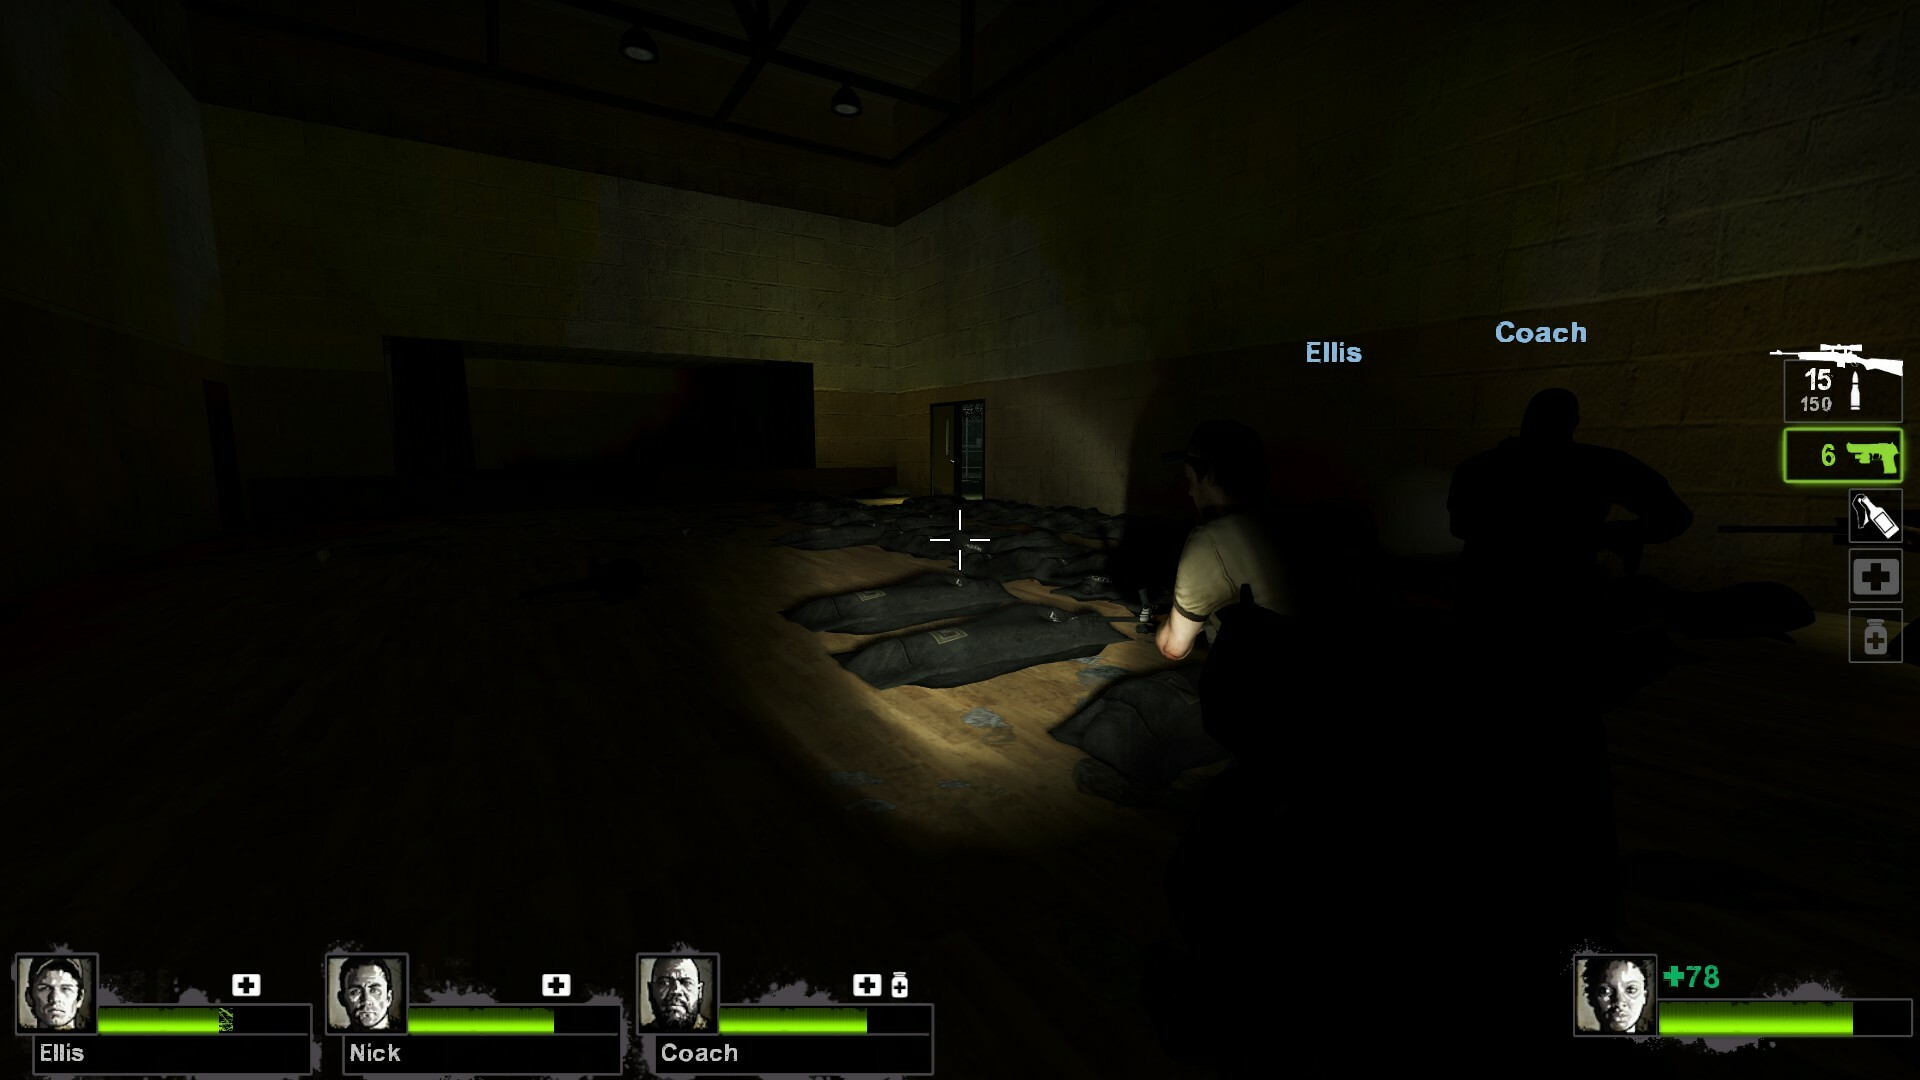 The next area after the barricade enforces the narrative of the school being used as a military outpost and being overrun by having corpses of soldiers piled up in the gym.